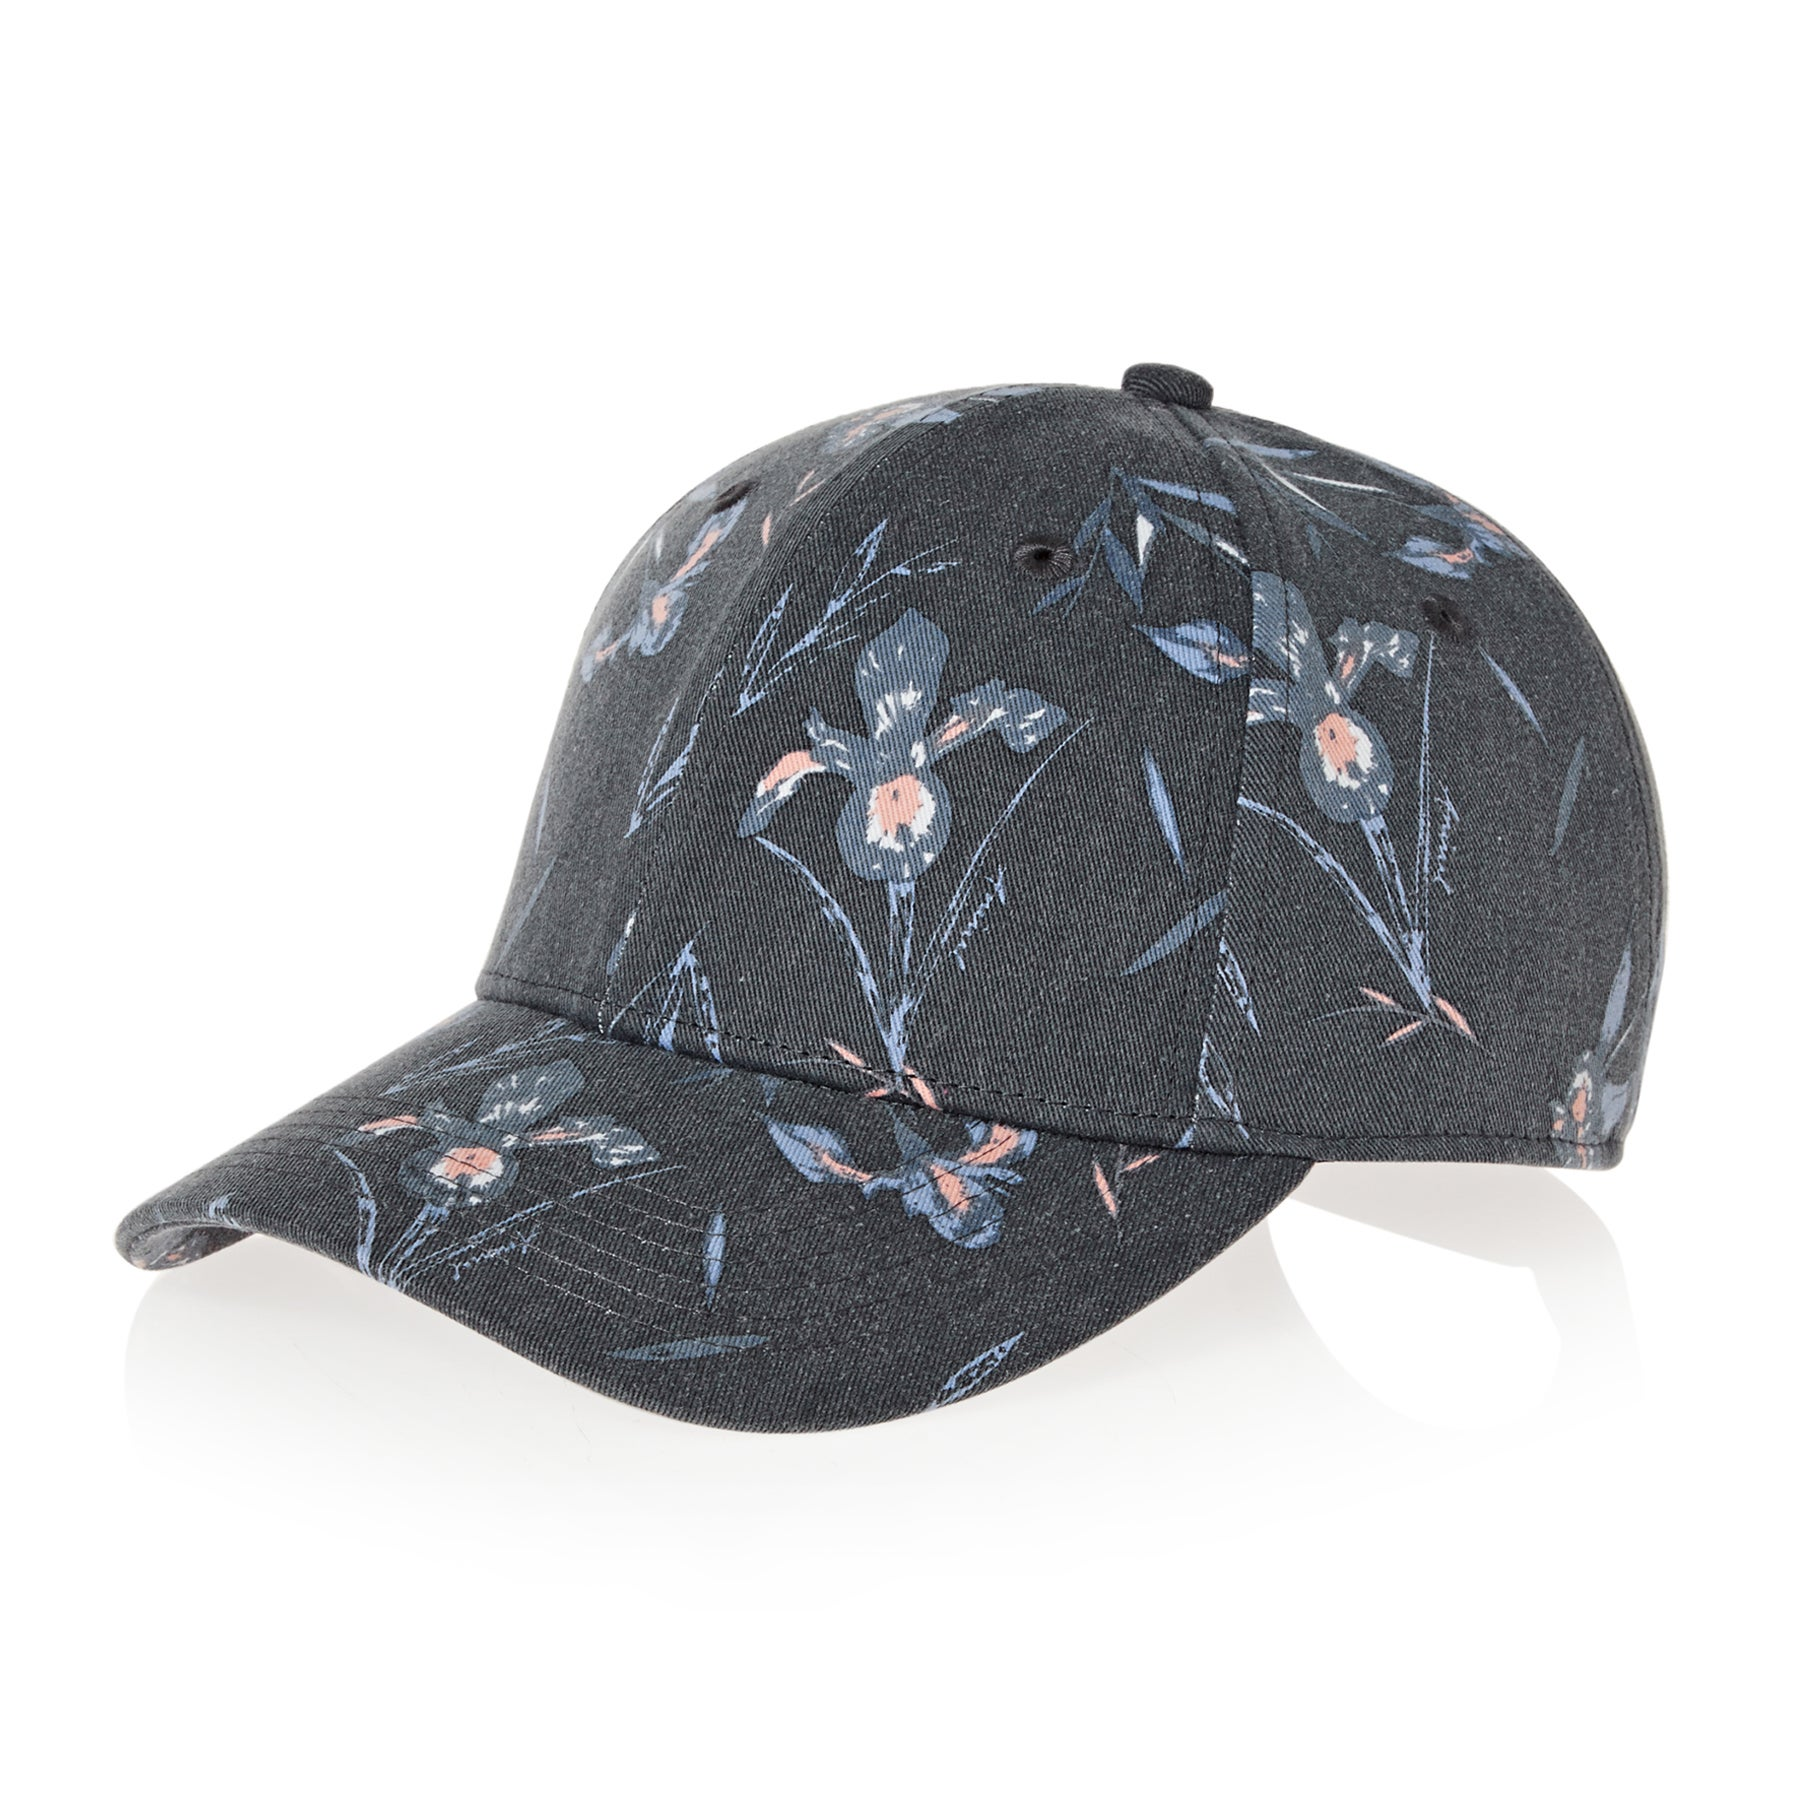 Casquette Femme Animal Ablaze - India Ink Blue